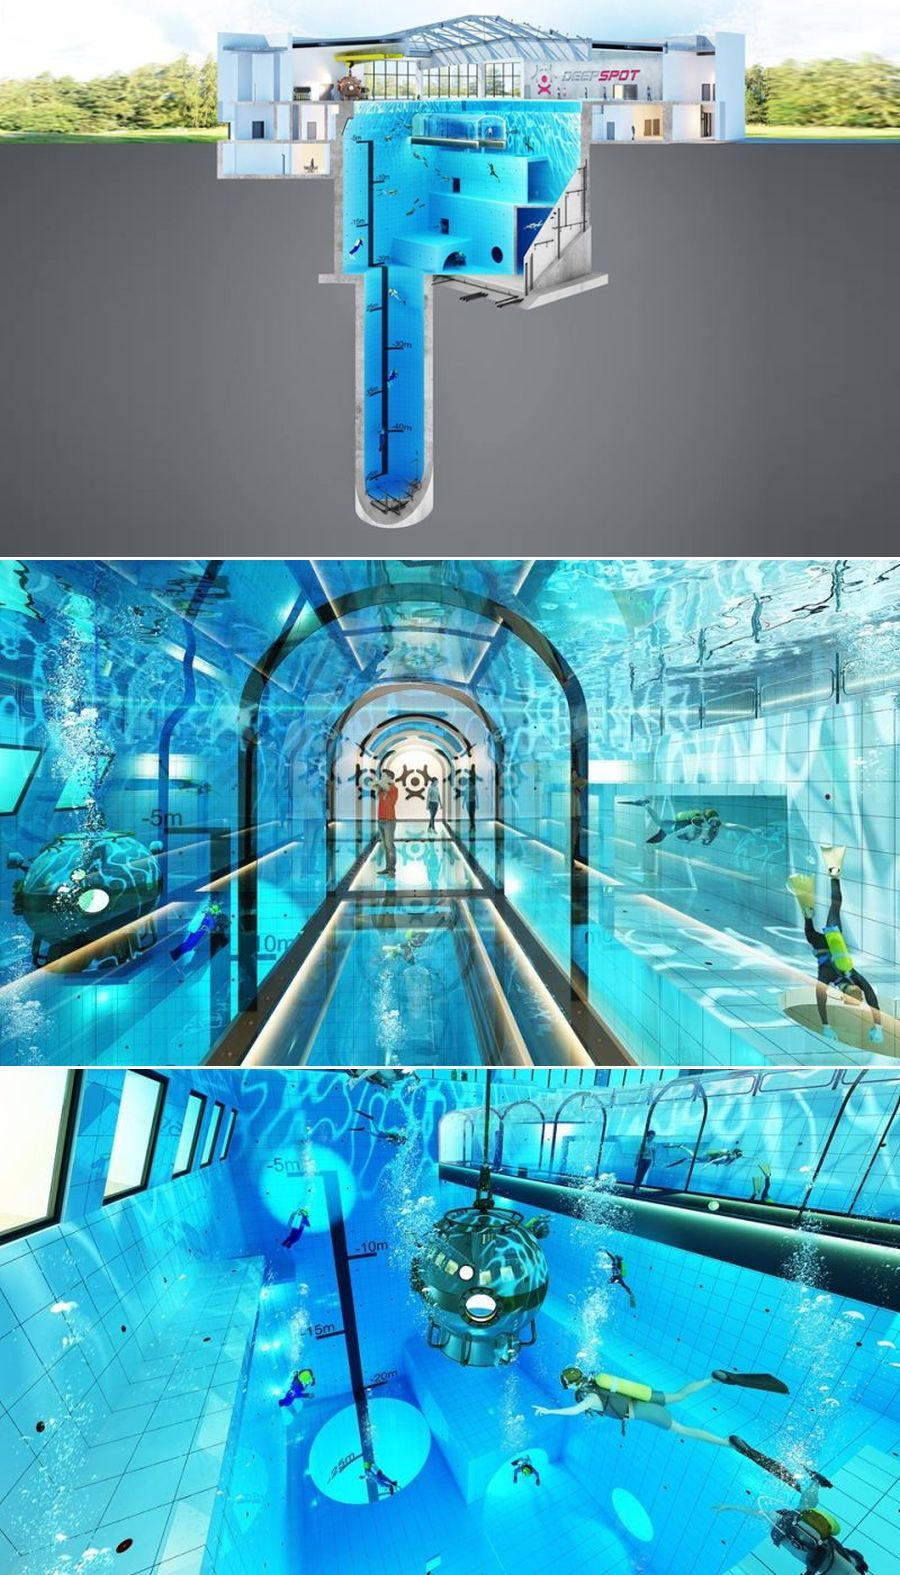 Deepspot World S Deepest Pool Will Have Underwater Tunnel Hotel